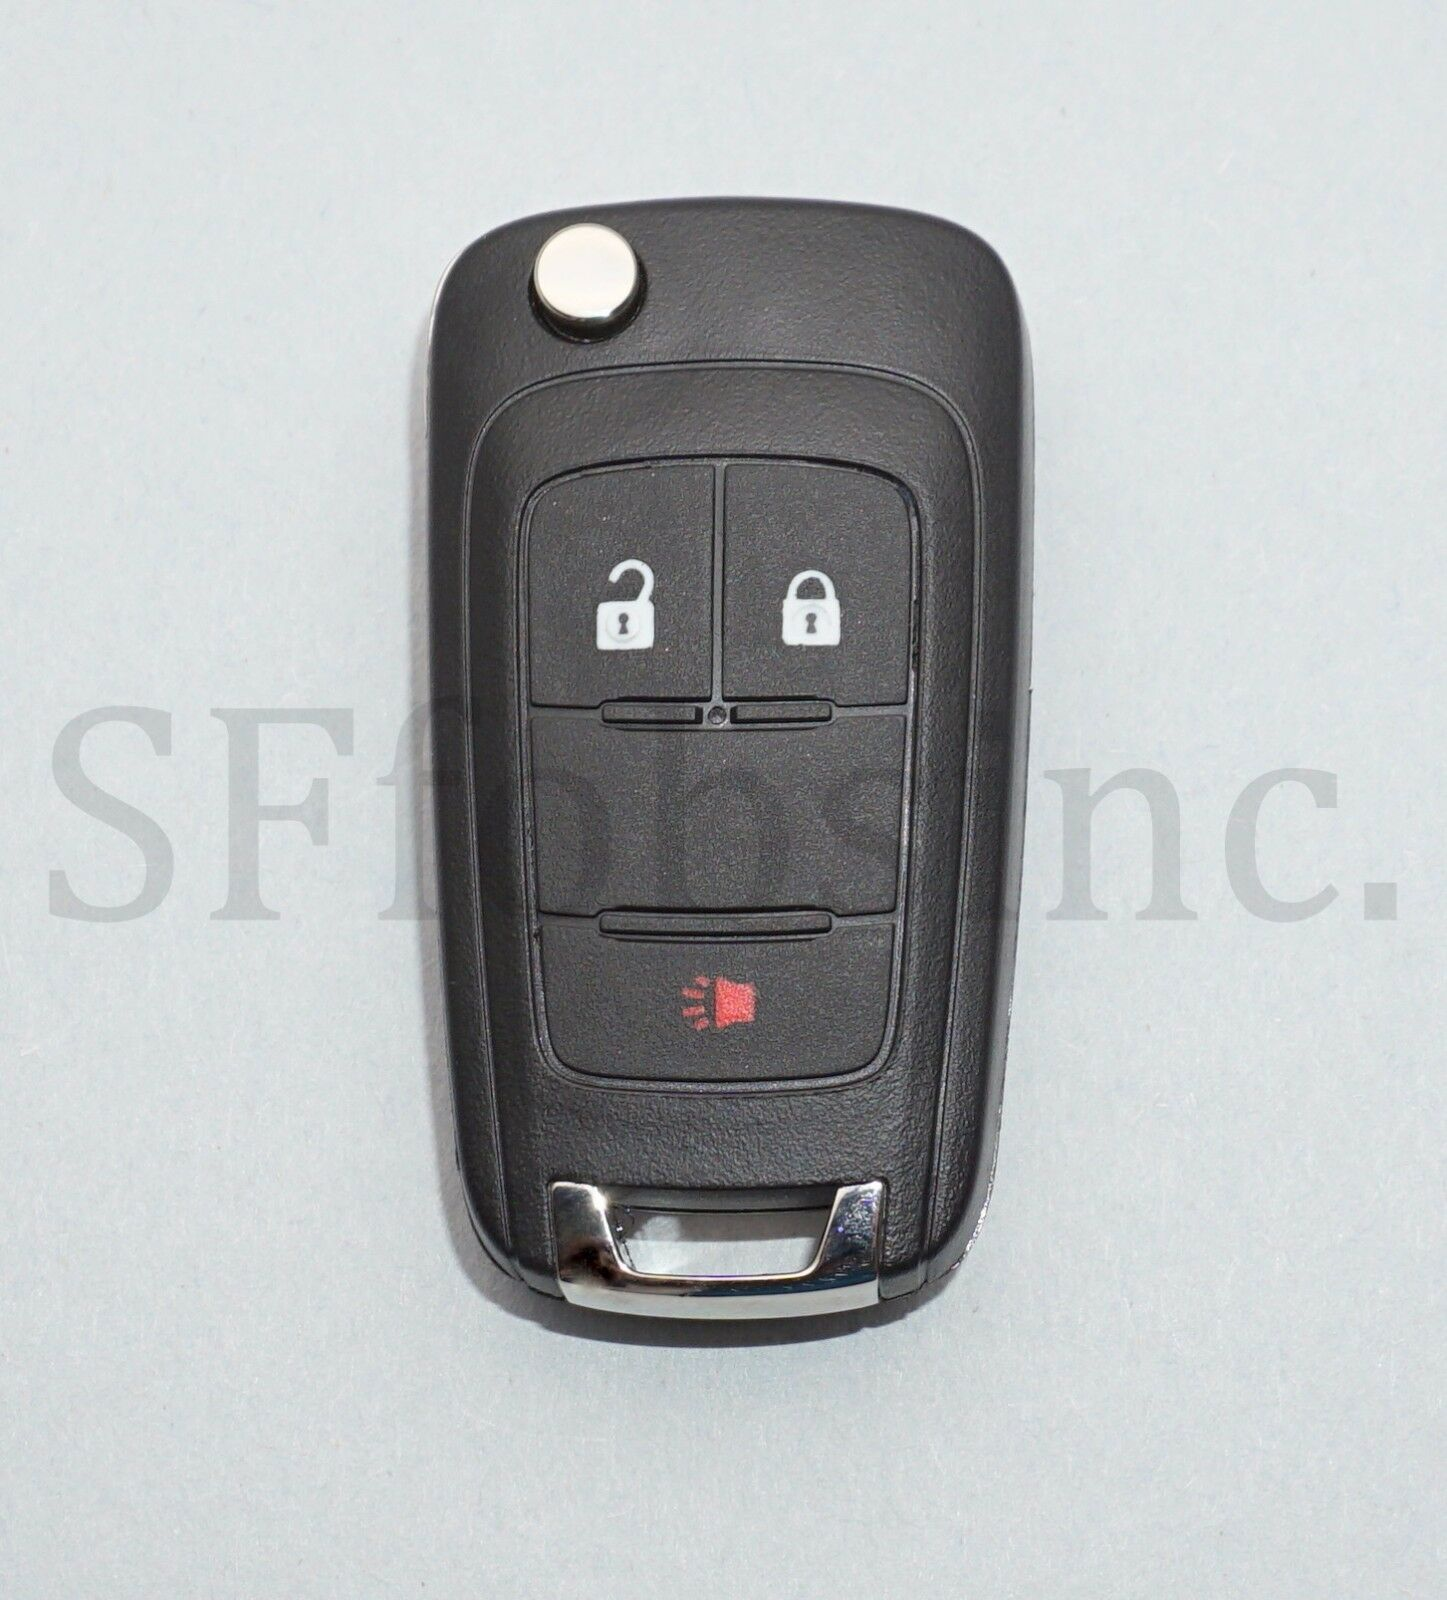 NEW OEM 2016 2017 GM CHEVY SPARK FLIP KEY KEYLESS ENTRY REMOTE FOB 13575182